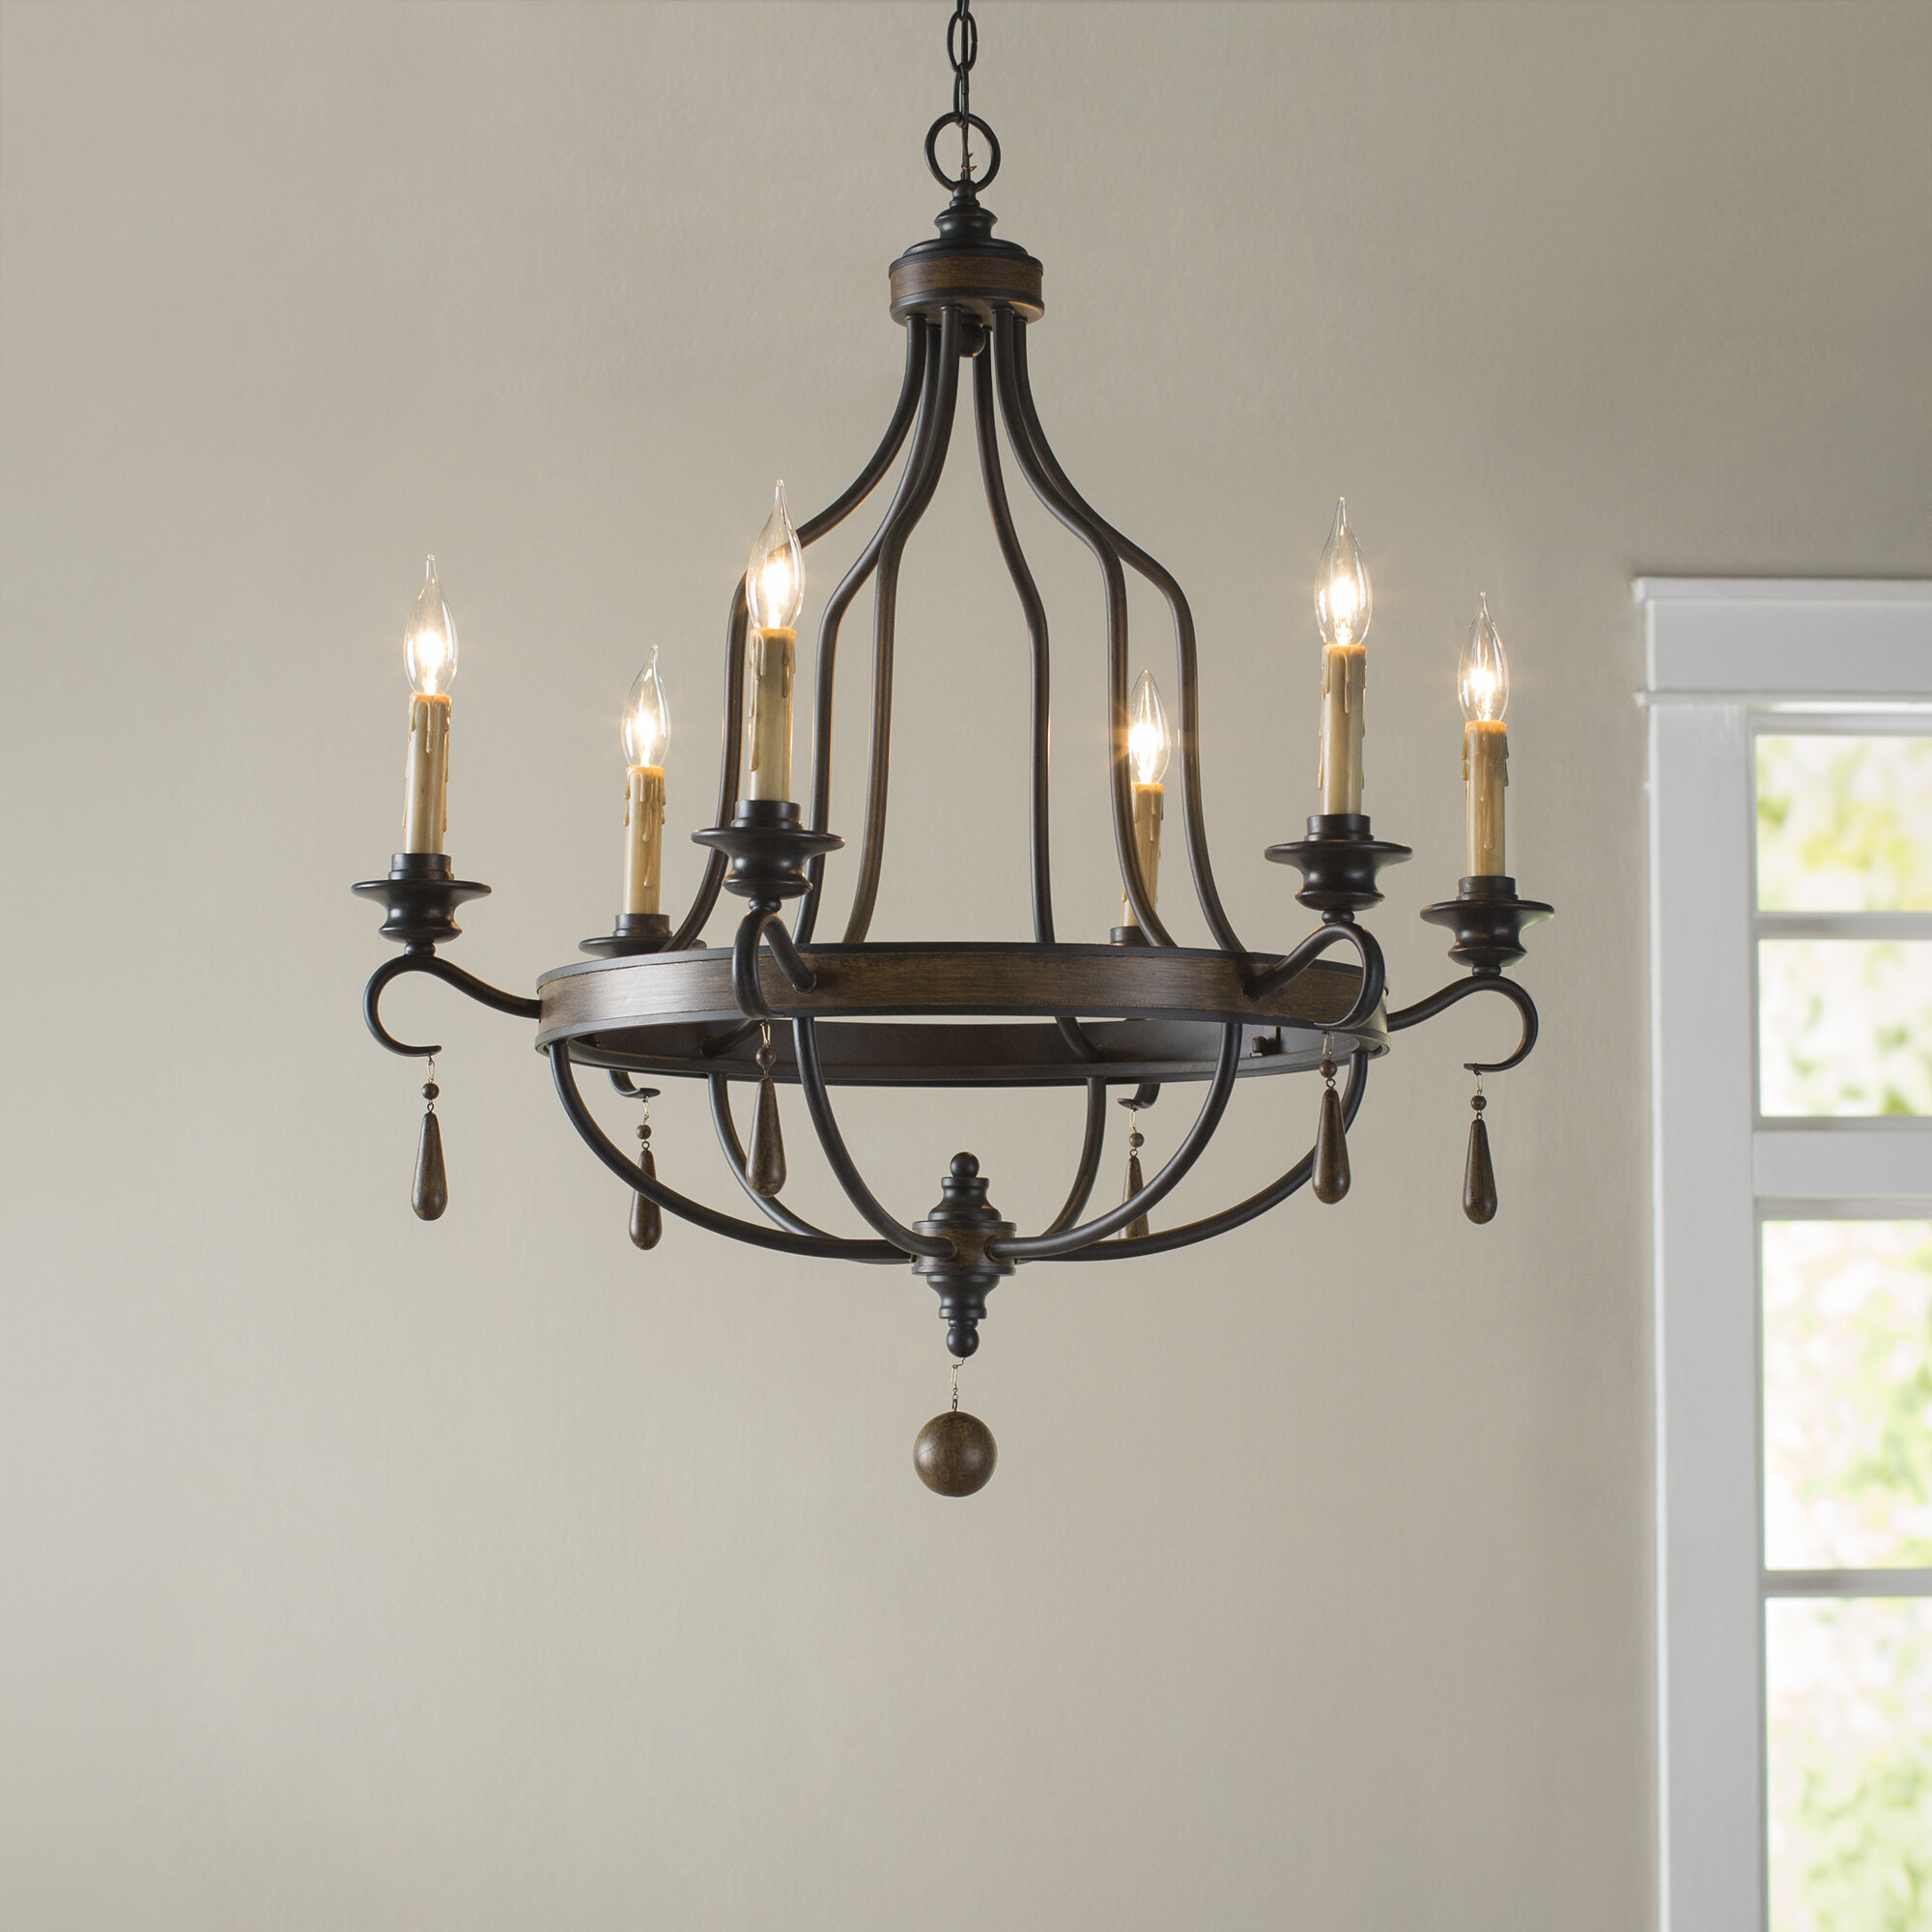 Coningsby 6 Light Candle Style Chandelier & Reviews